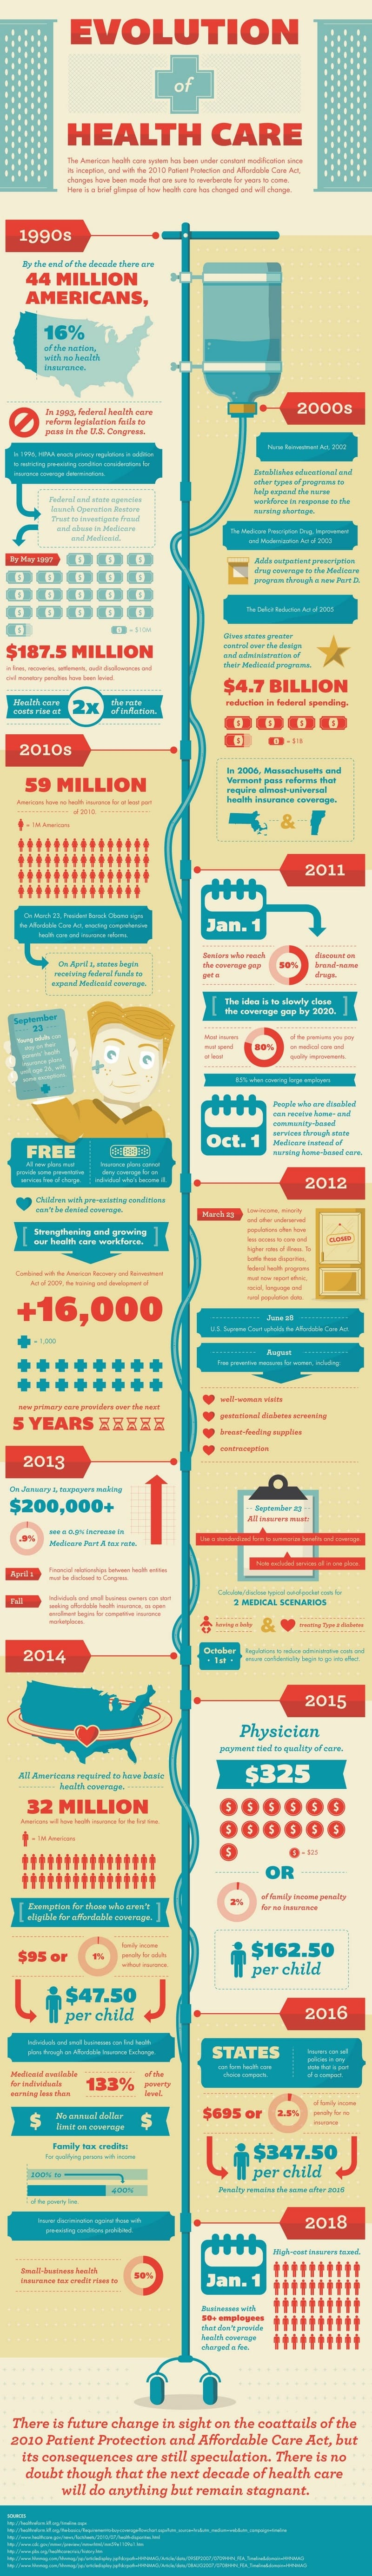 Evolution Healtcare infographic